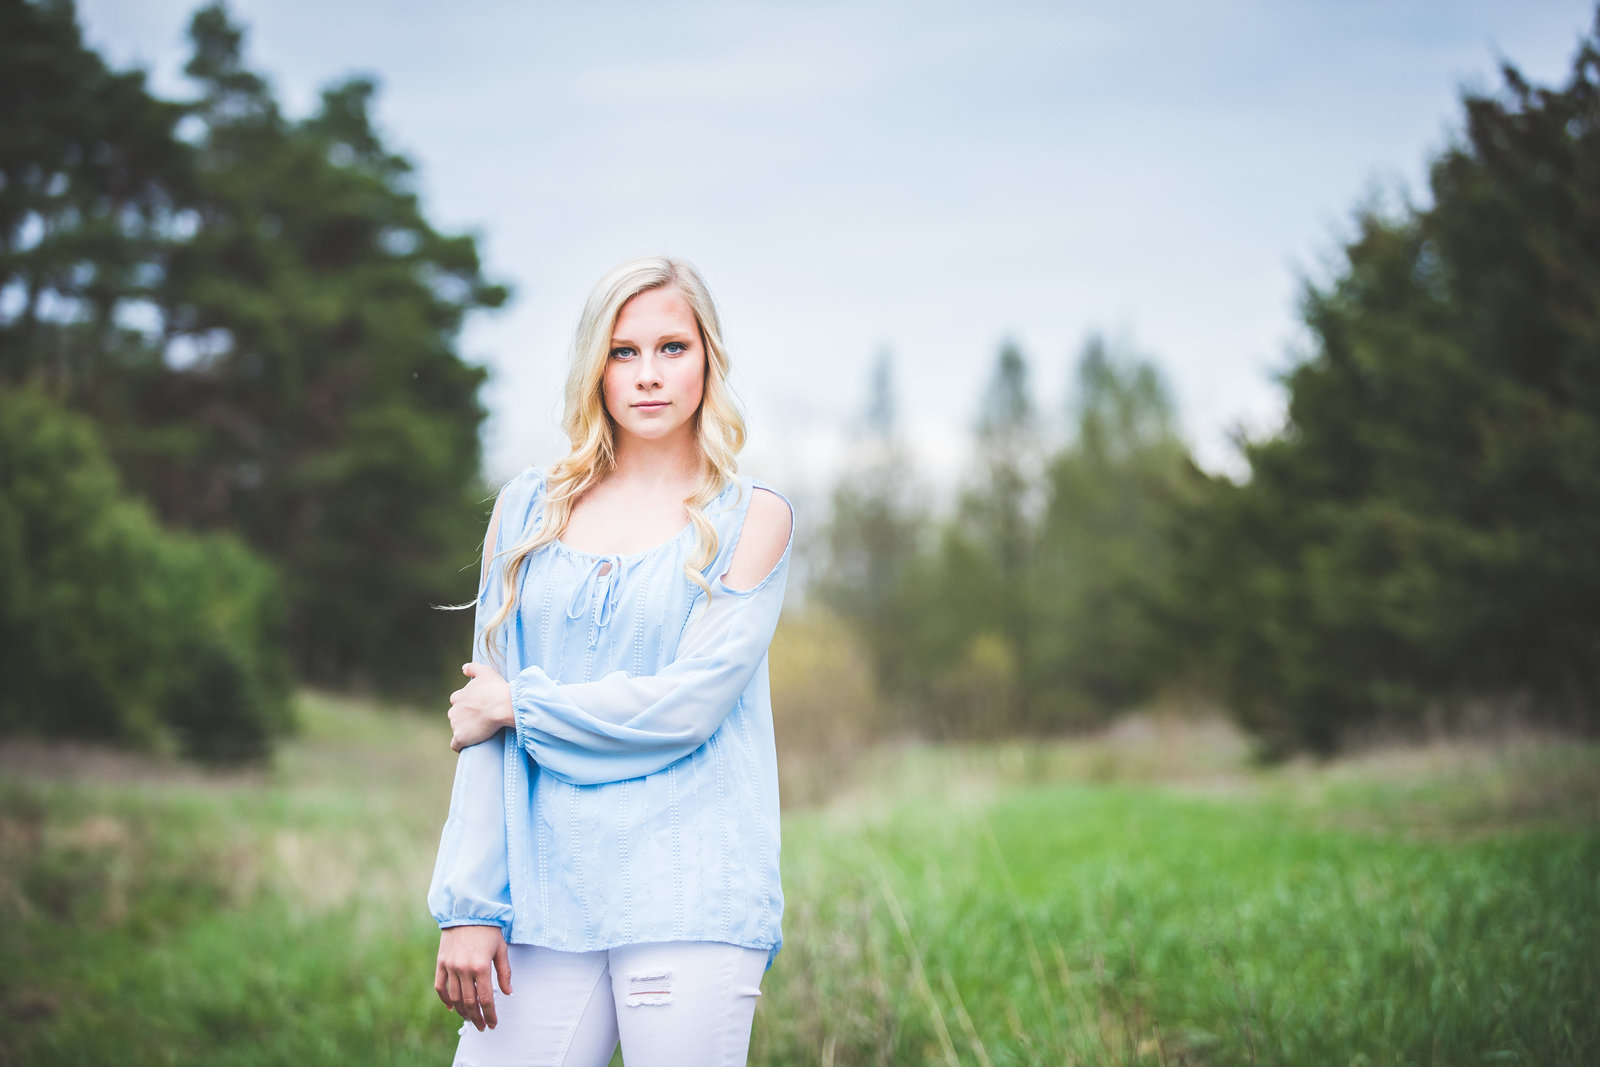 Ionia high school senior portraits outdoors at a private Ionia location